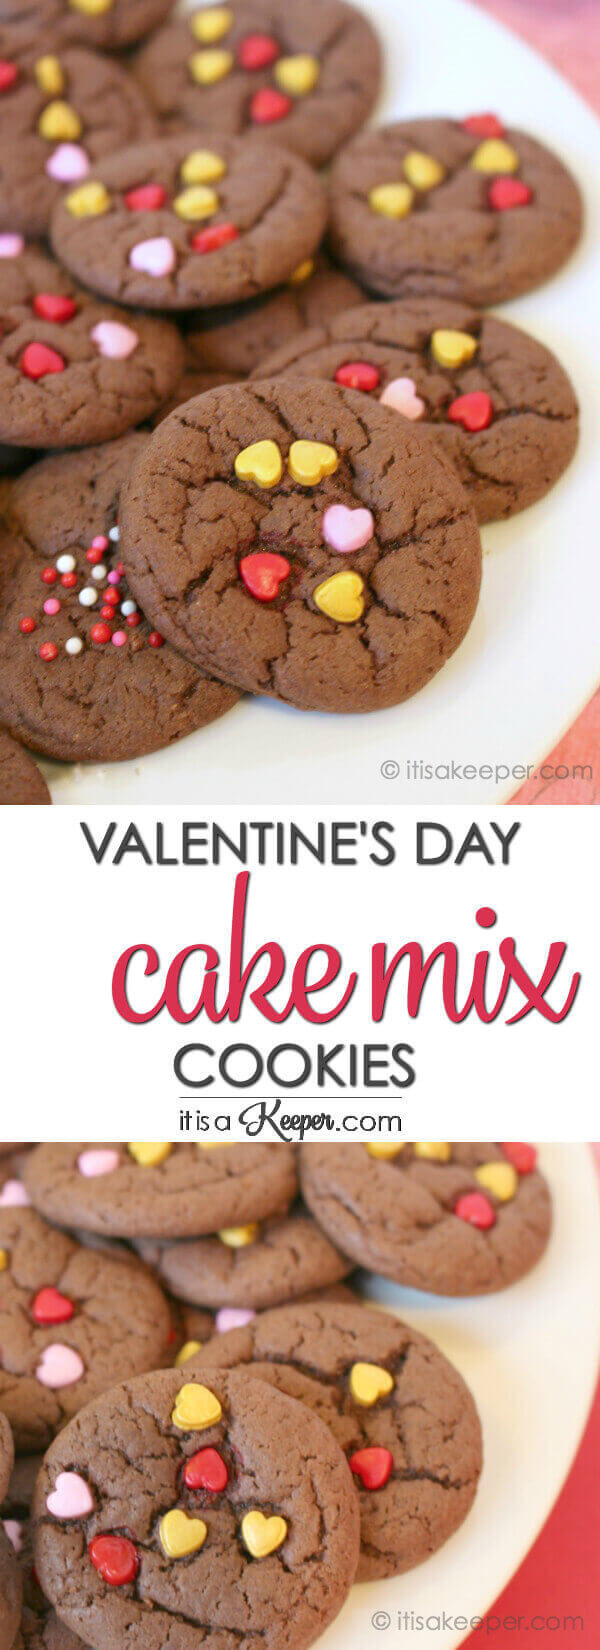 These Valentine Boxed Cake Mix Cookies are so easy to make and one of my favoritedesserts to bring to a party or potluck.